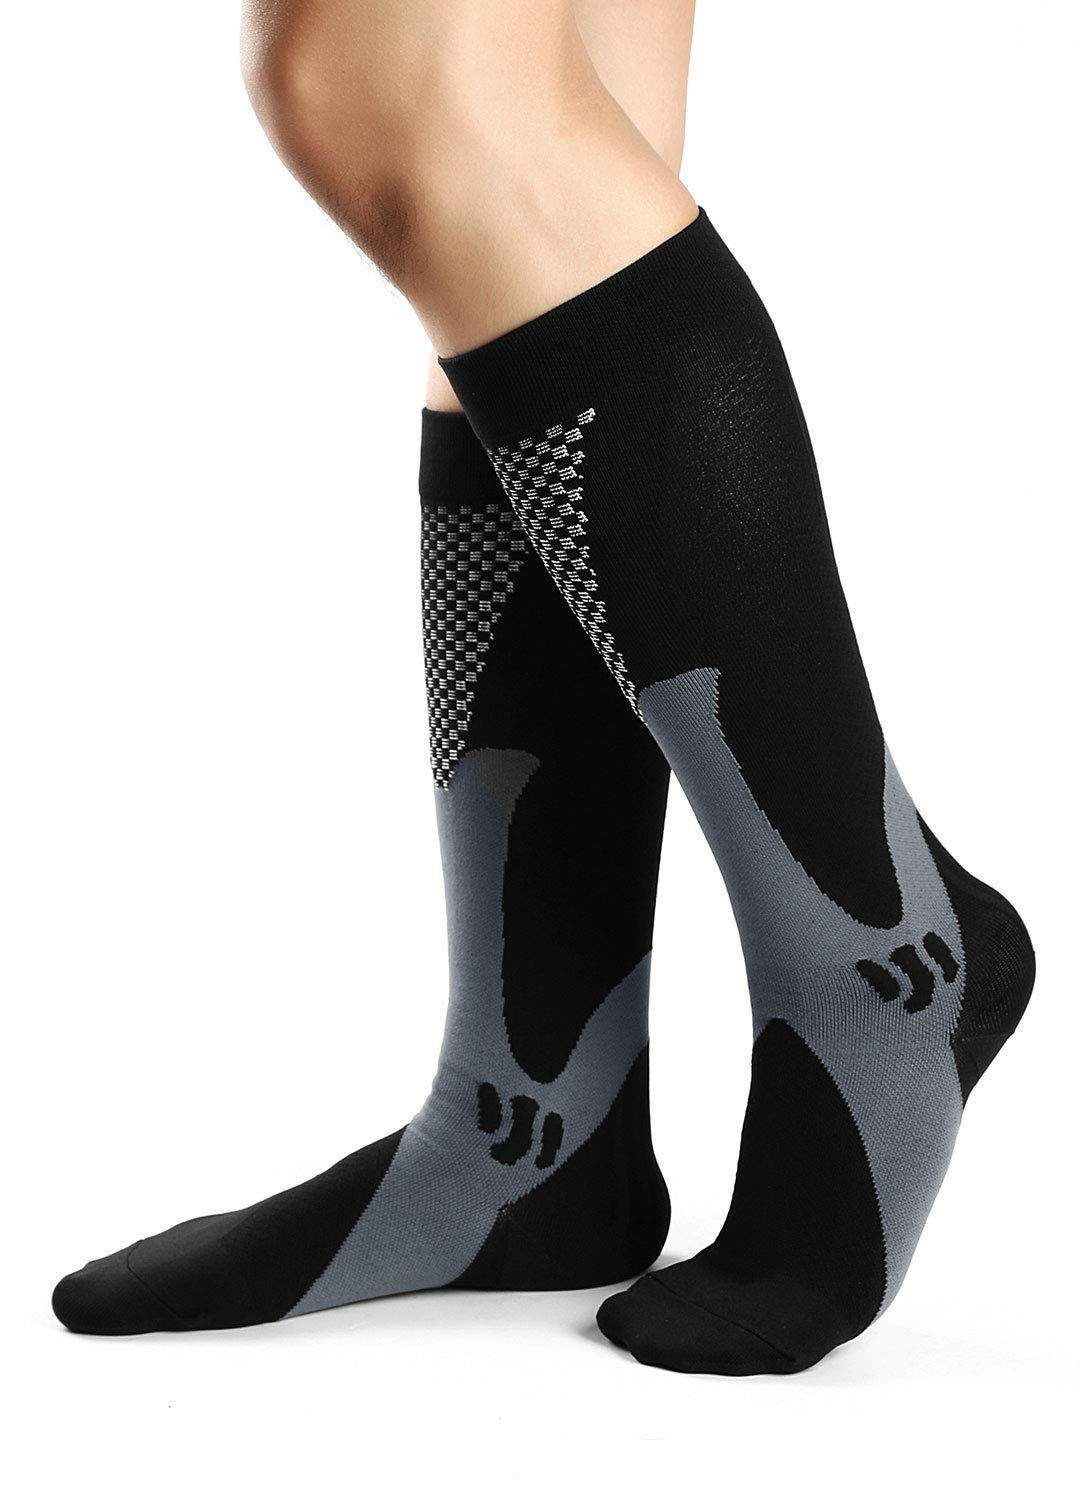 Men Compression Socks Women Medical Grade Graduated Athletic Socks for Nursing, Pregnancy, Sports, 15-25mmHg 3 Pairs